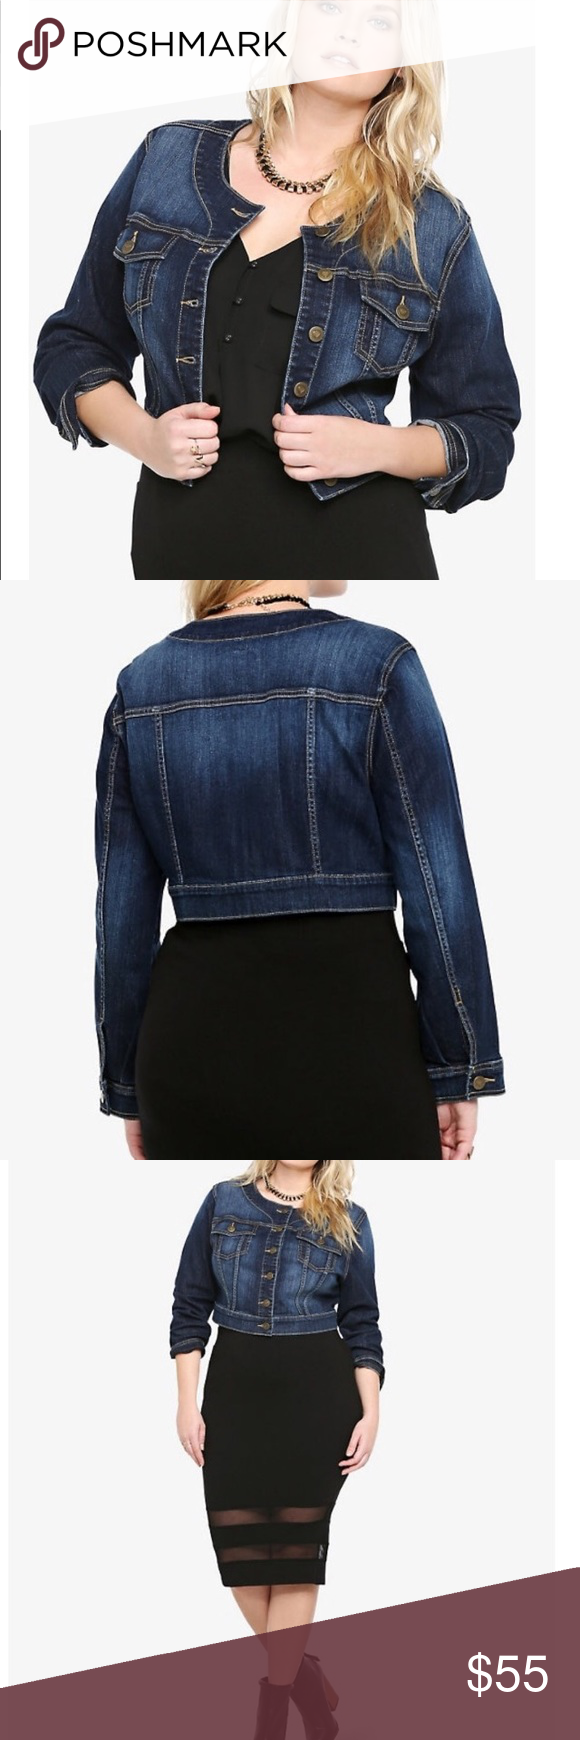 17b1879a380cb Torrid crop denim jacket Torrid size 2 Dark wash denim jacket Cropped and  no collar Great condition Approx measurements when flat Pit to pit 23